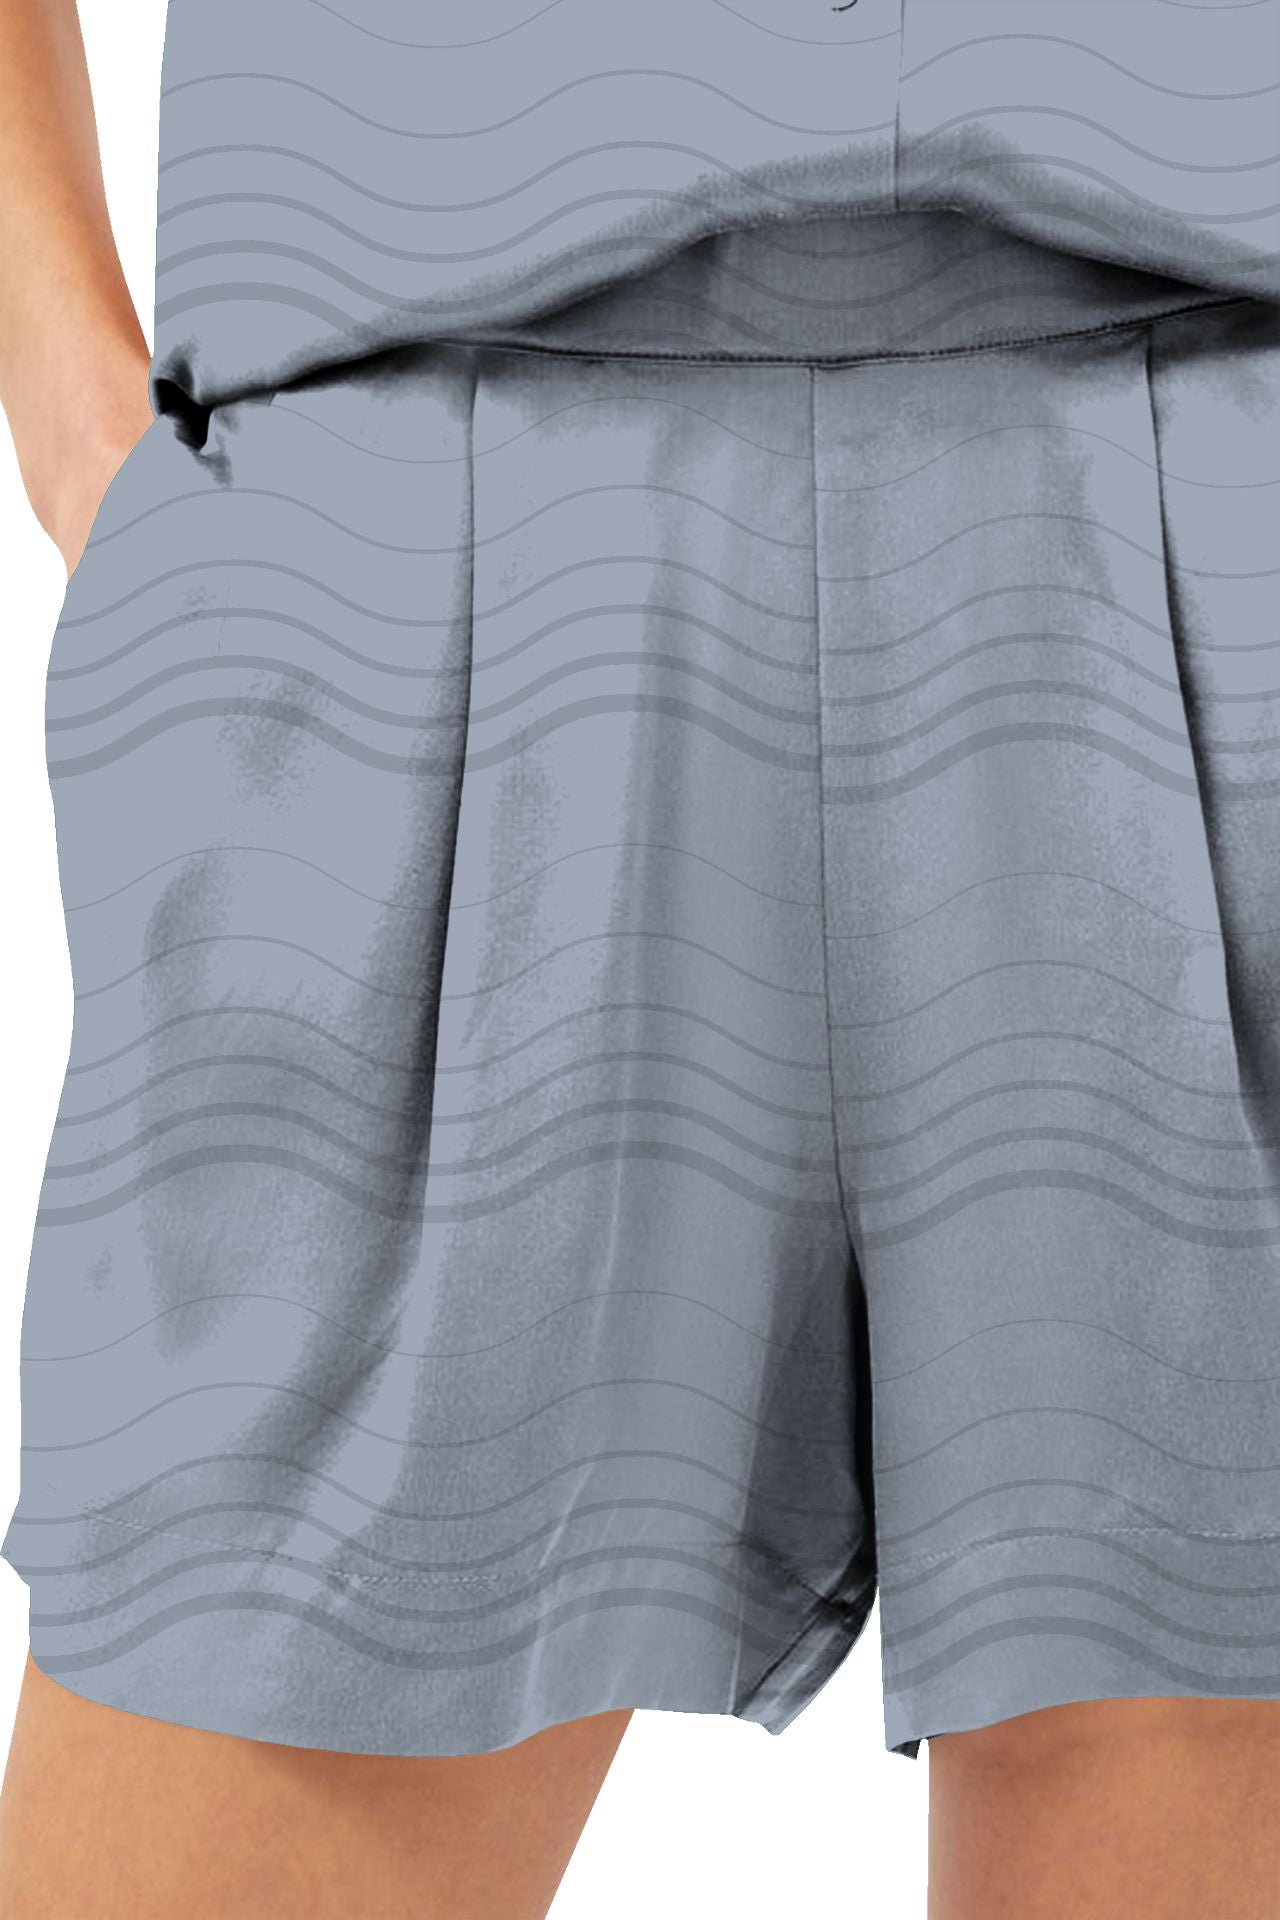 Made With Cupro Biodegradable Fabrics Silk Shorts In Grey